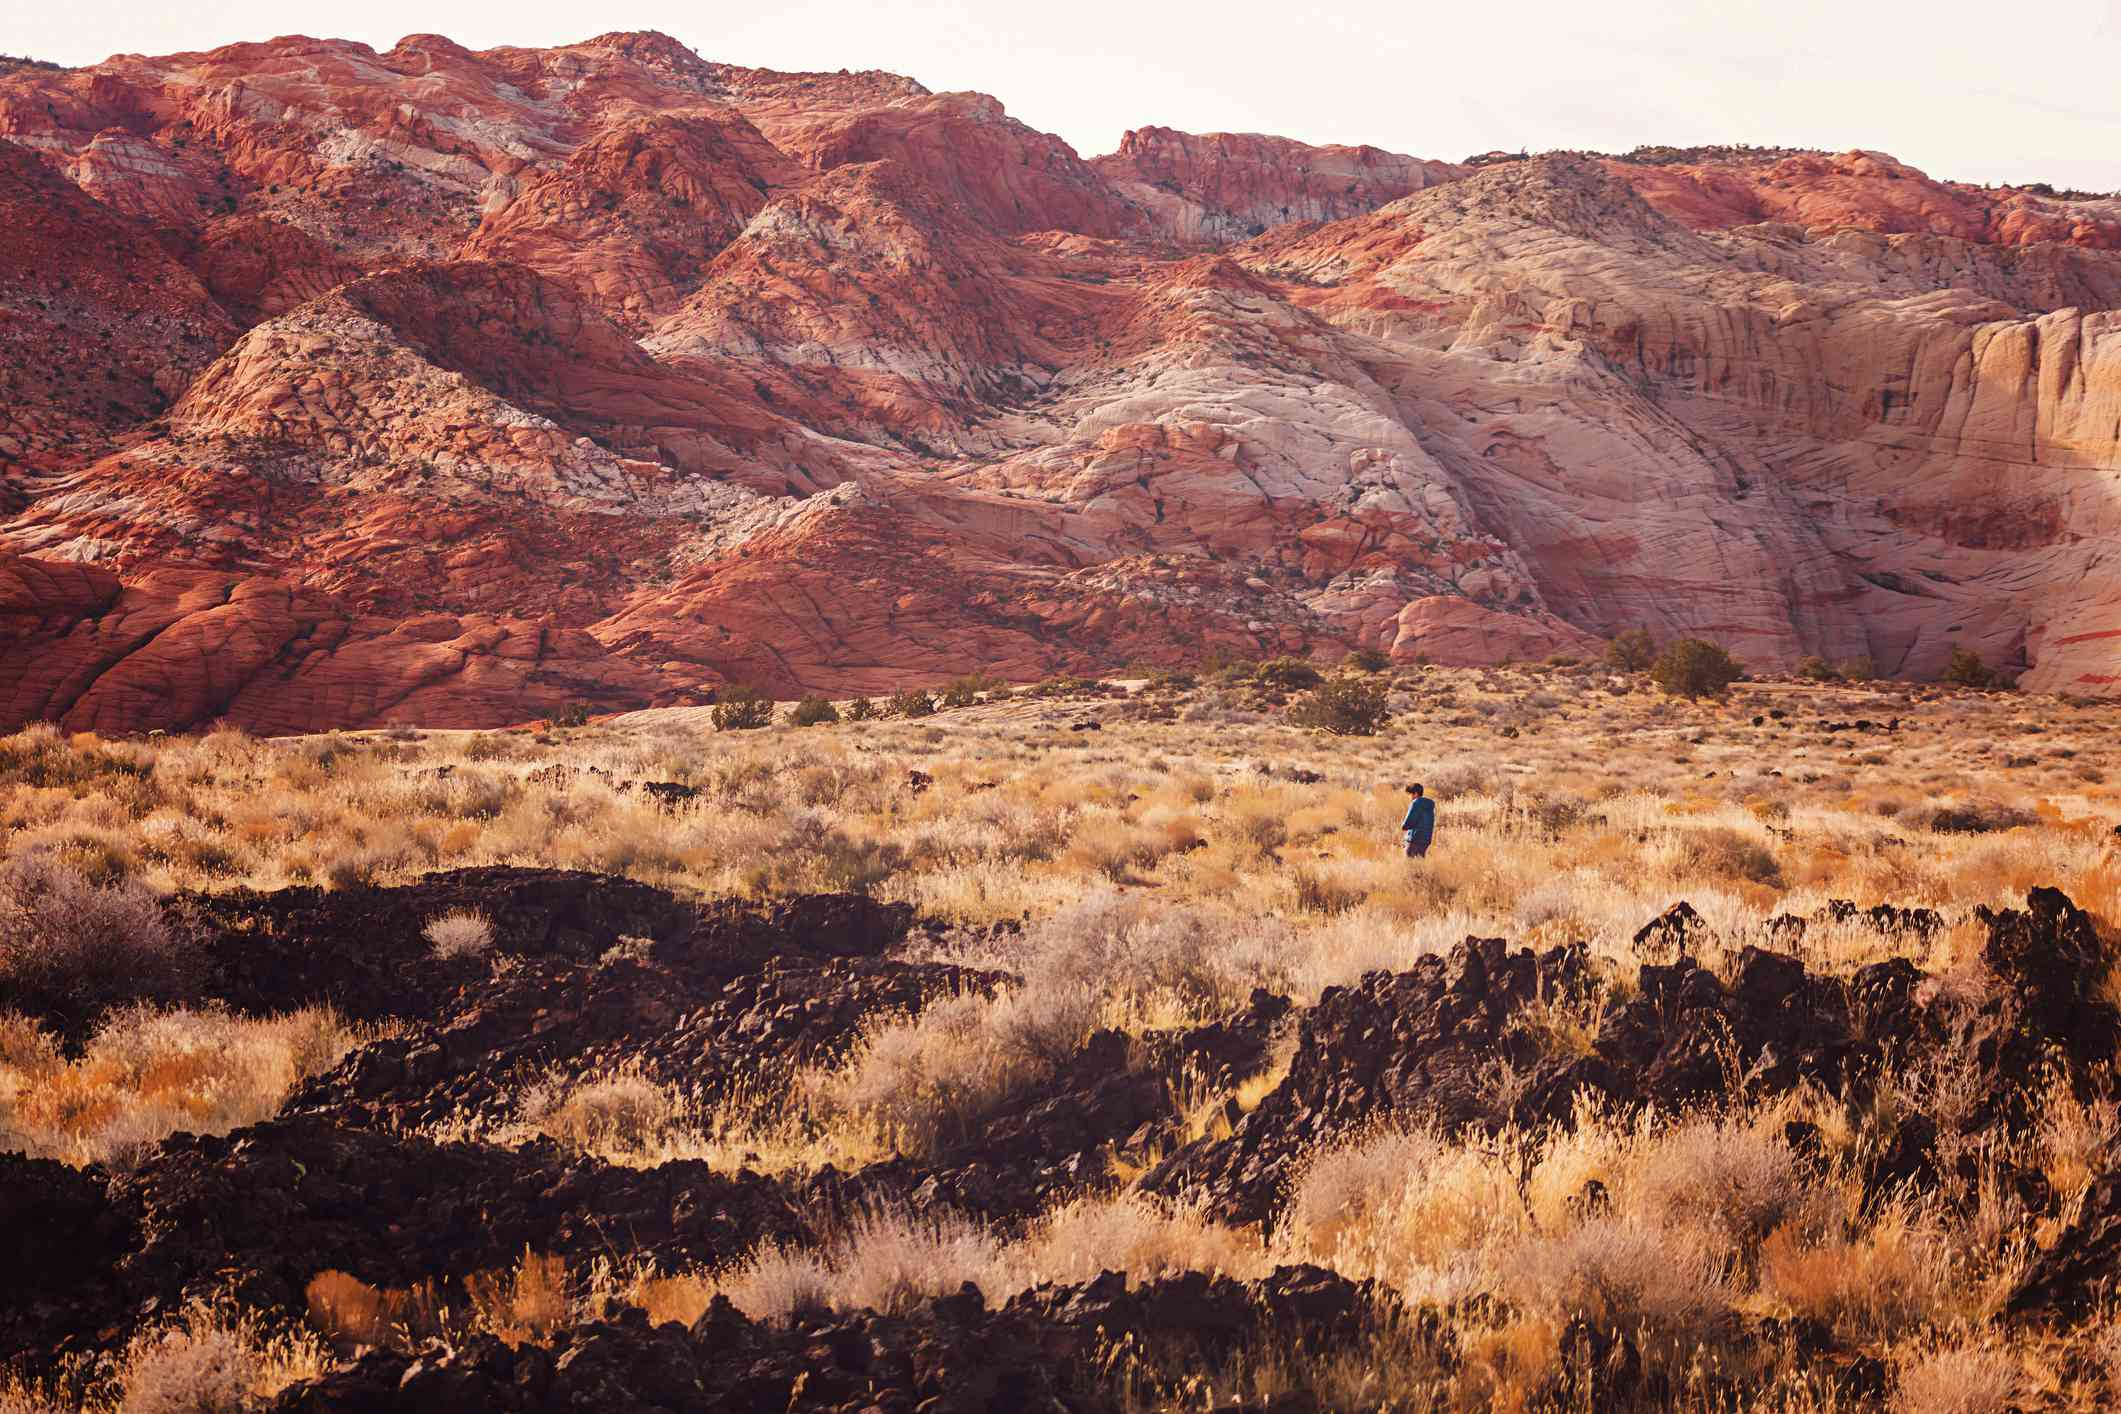 Boy hiking alone in the wilderness through sage brush with a large sandstone rock in the background